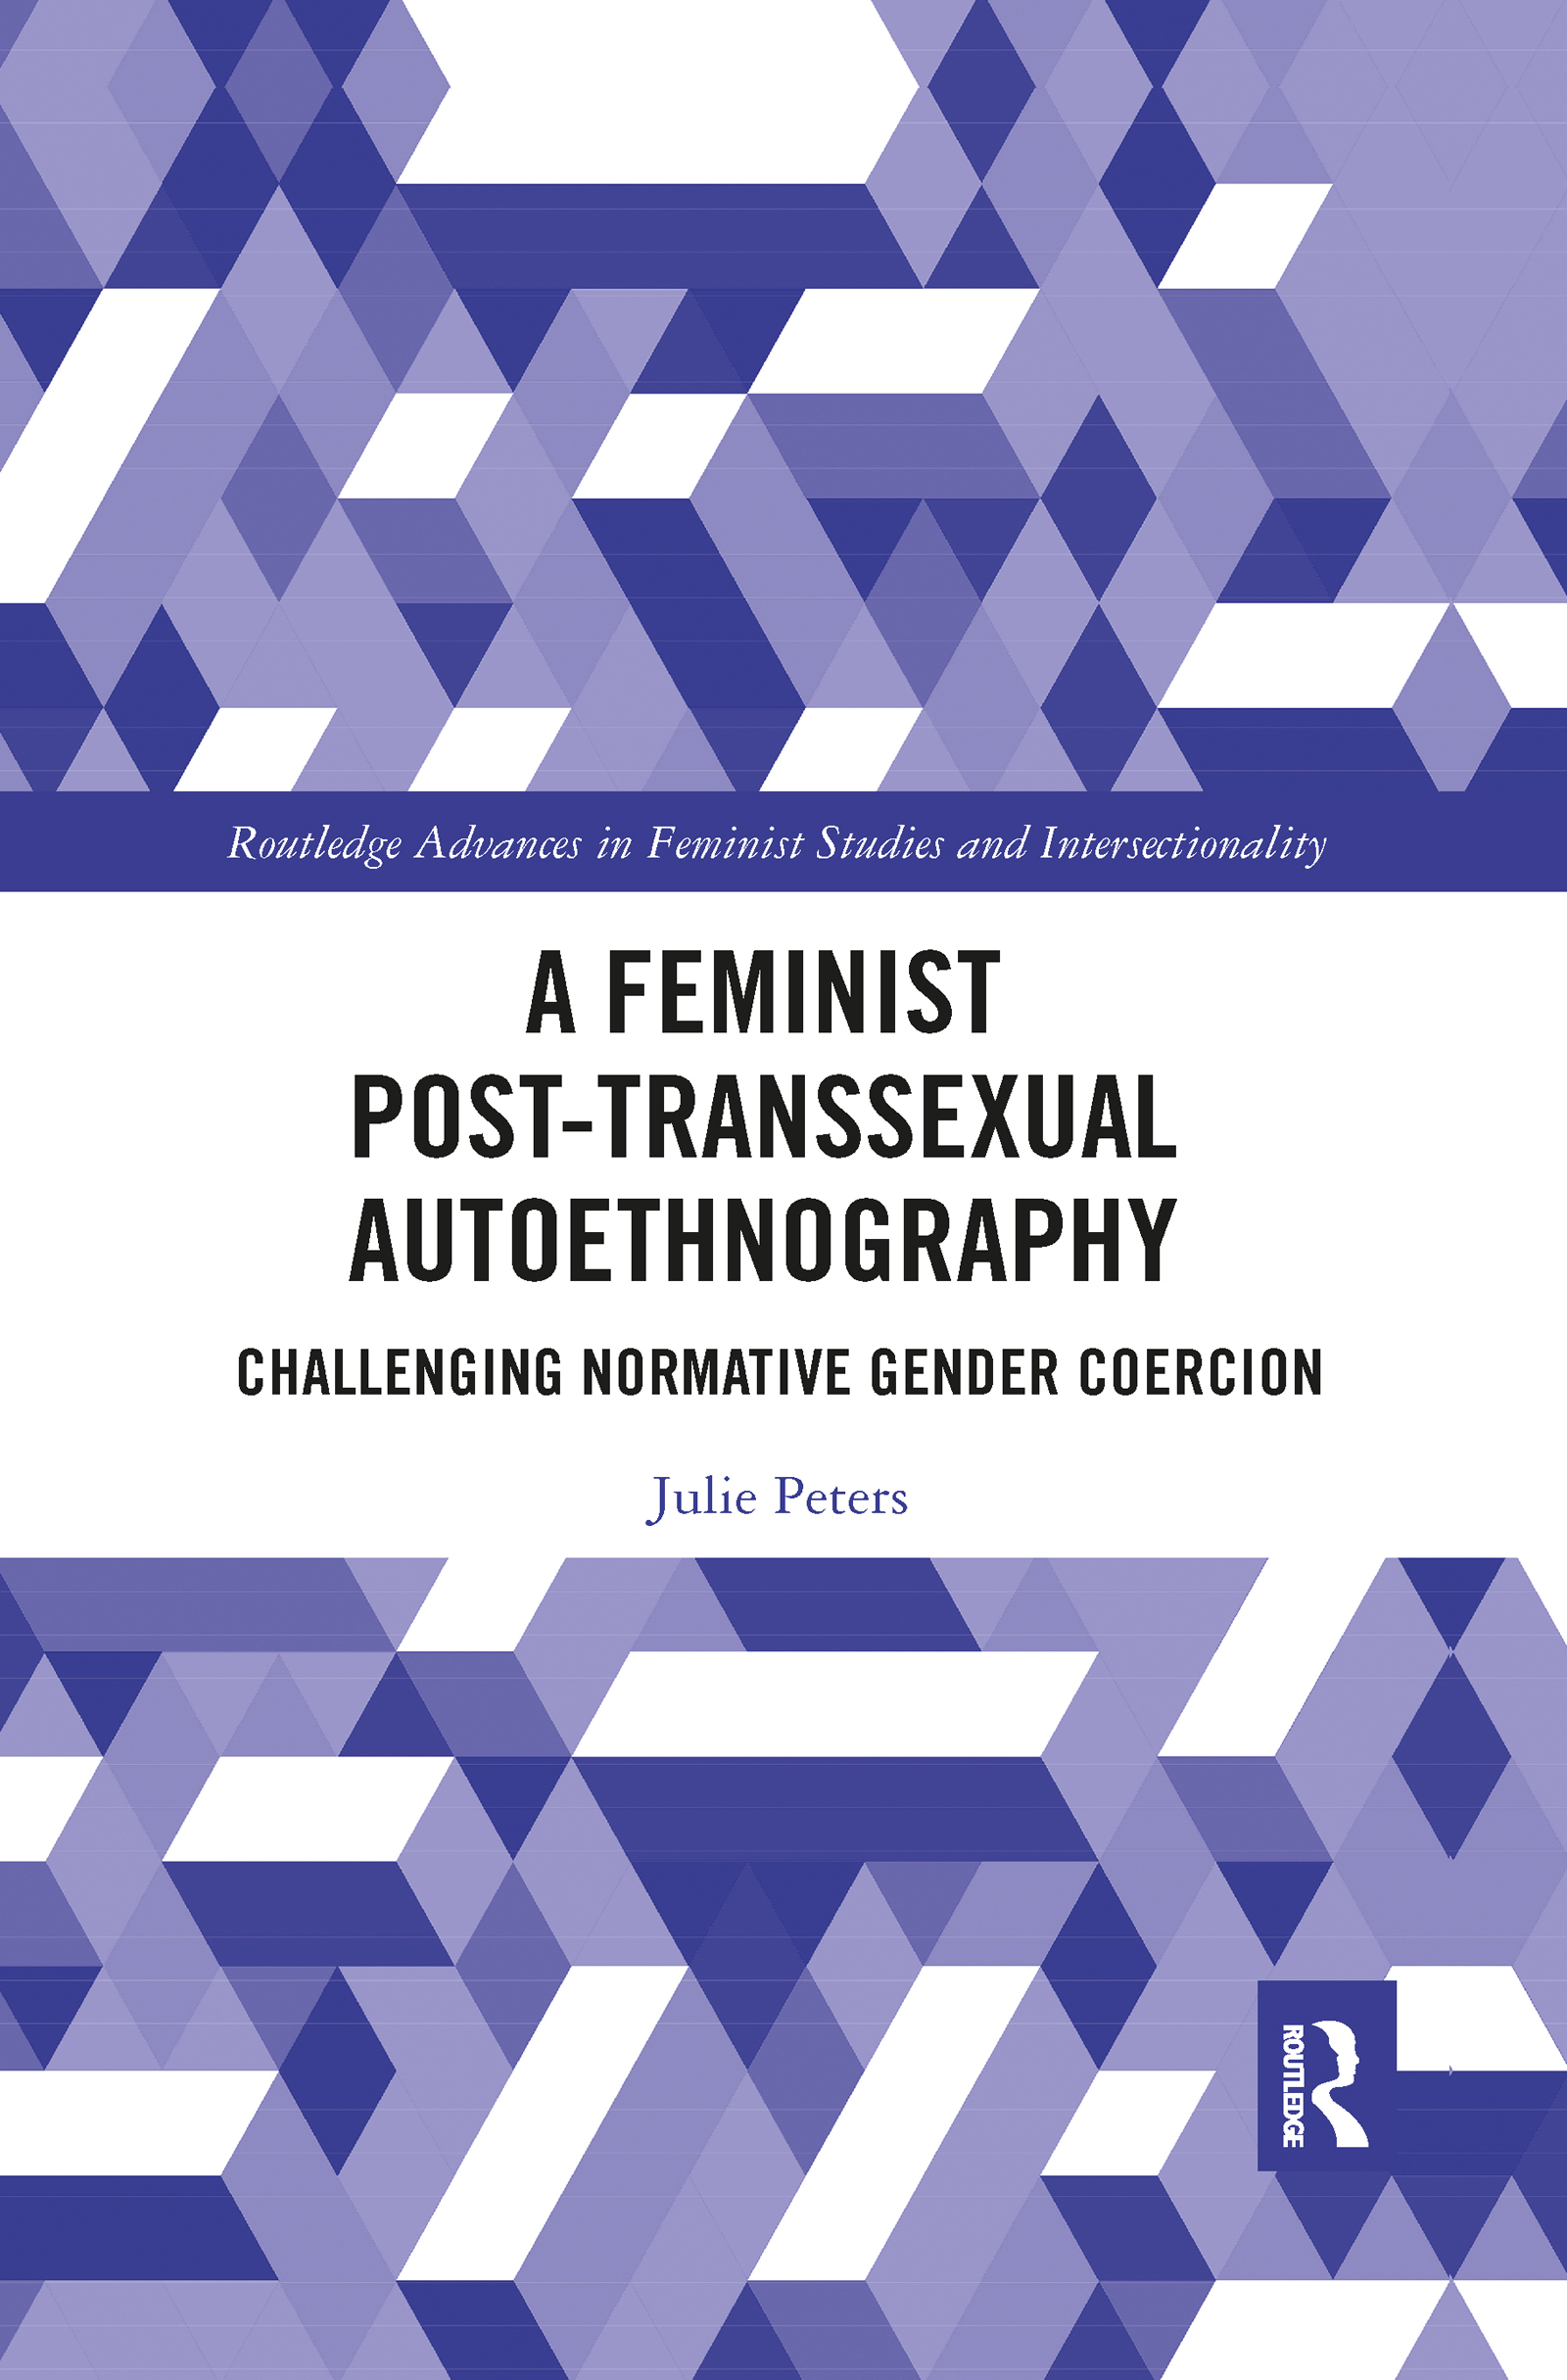 A Feminist Post-transsexual Autoethnography